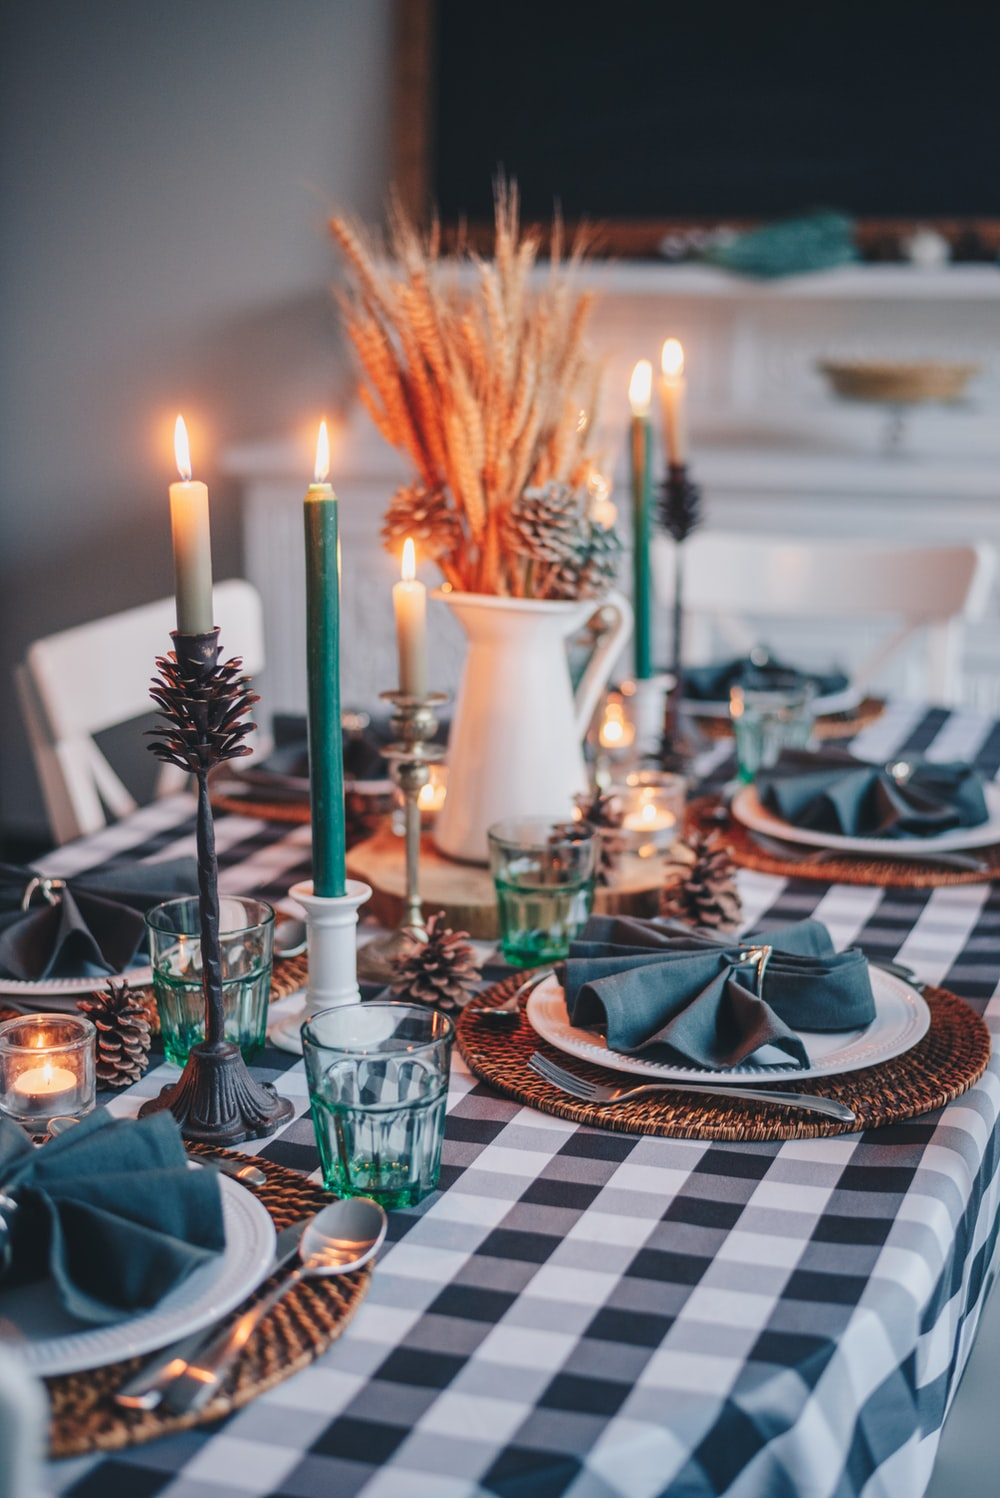 white candles on white and blue checkered table cloth